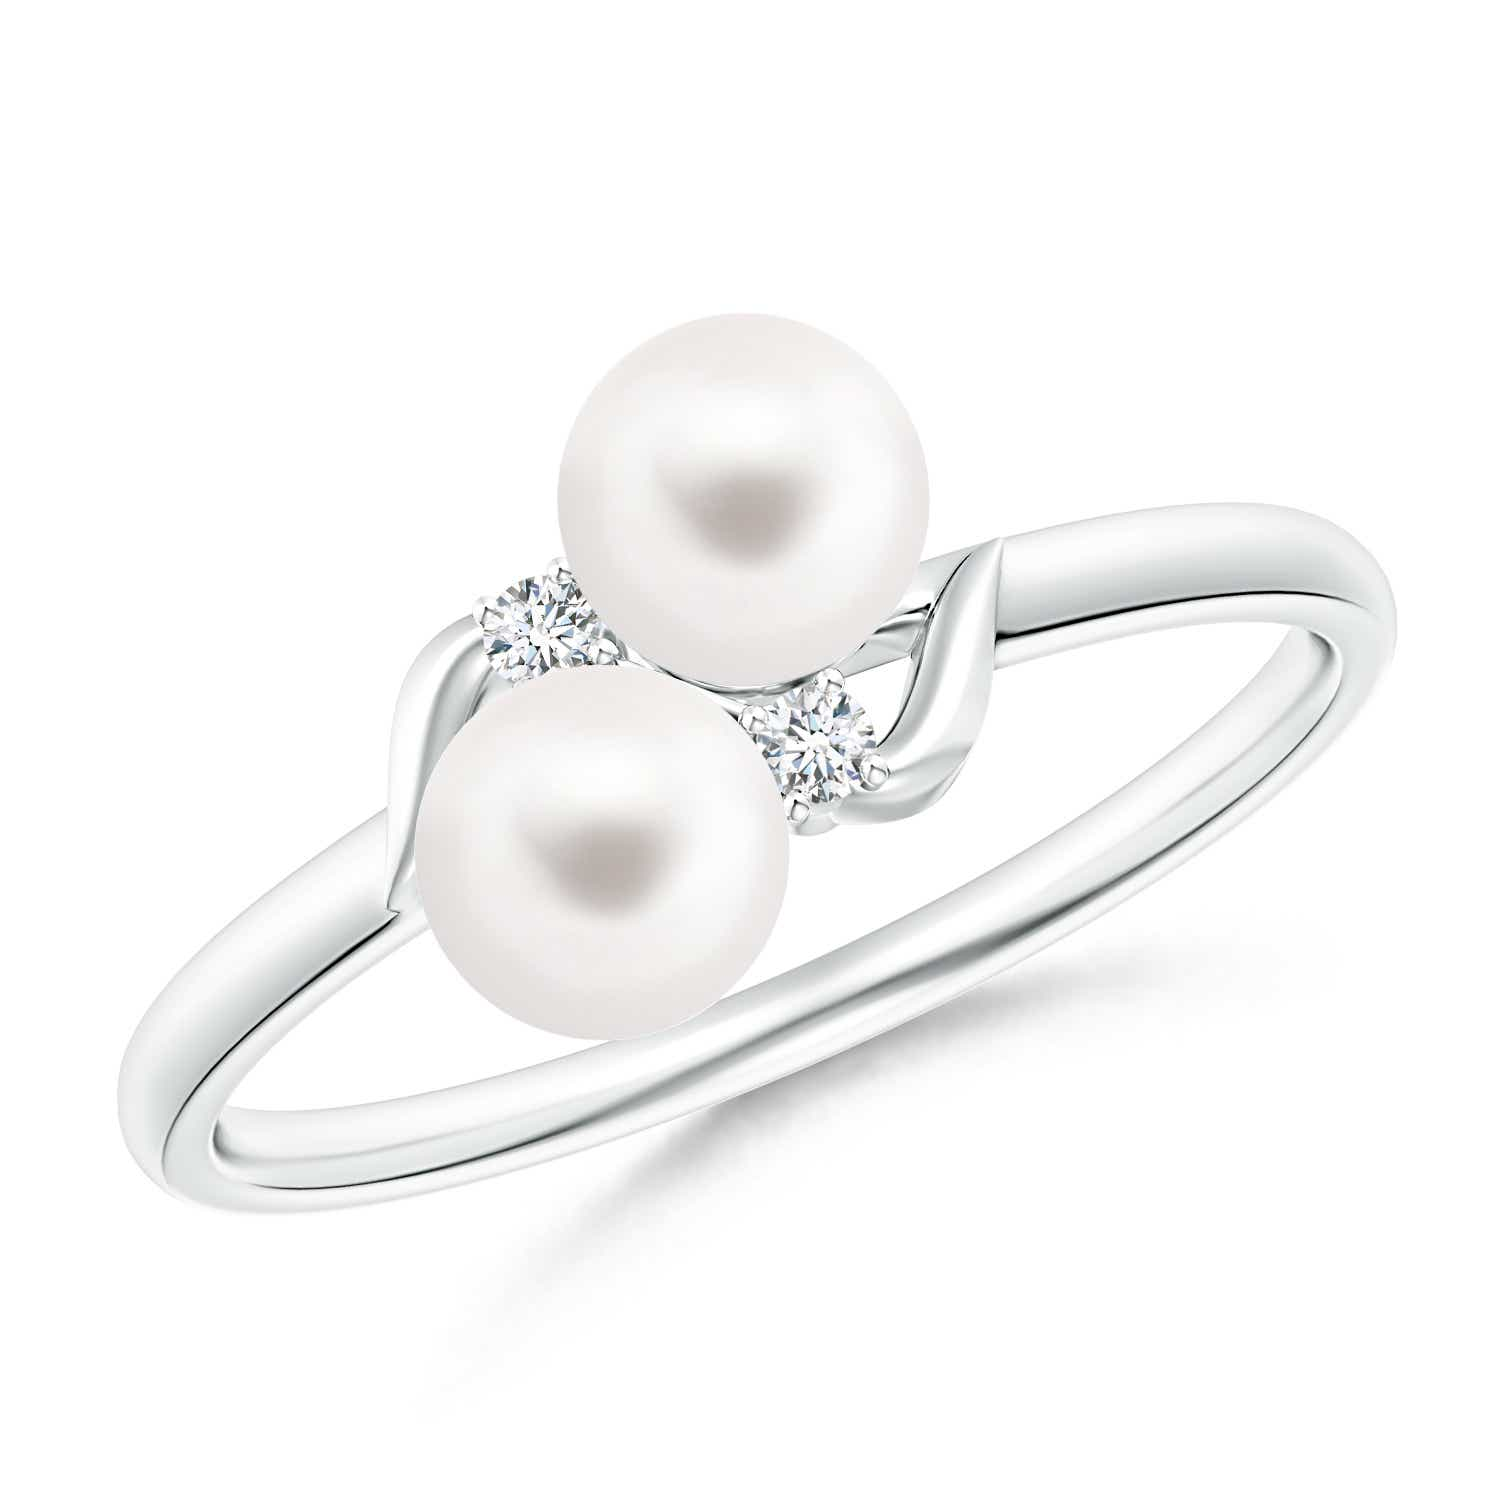 Angara Two Stone Freshwater Cultured Pearl Ring with Diamond Accents